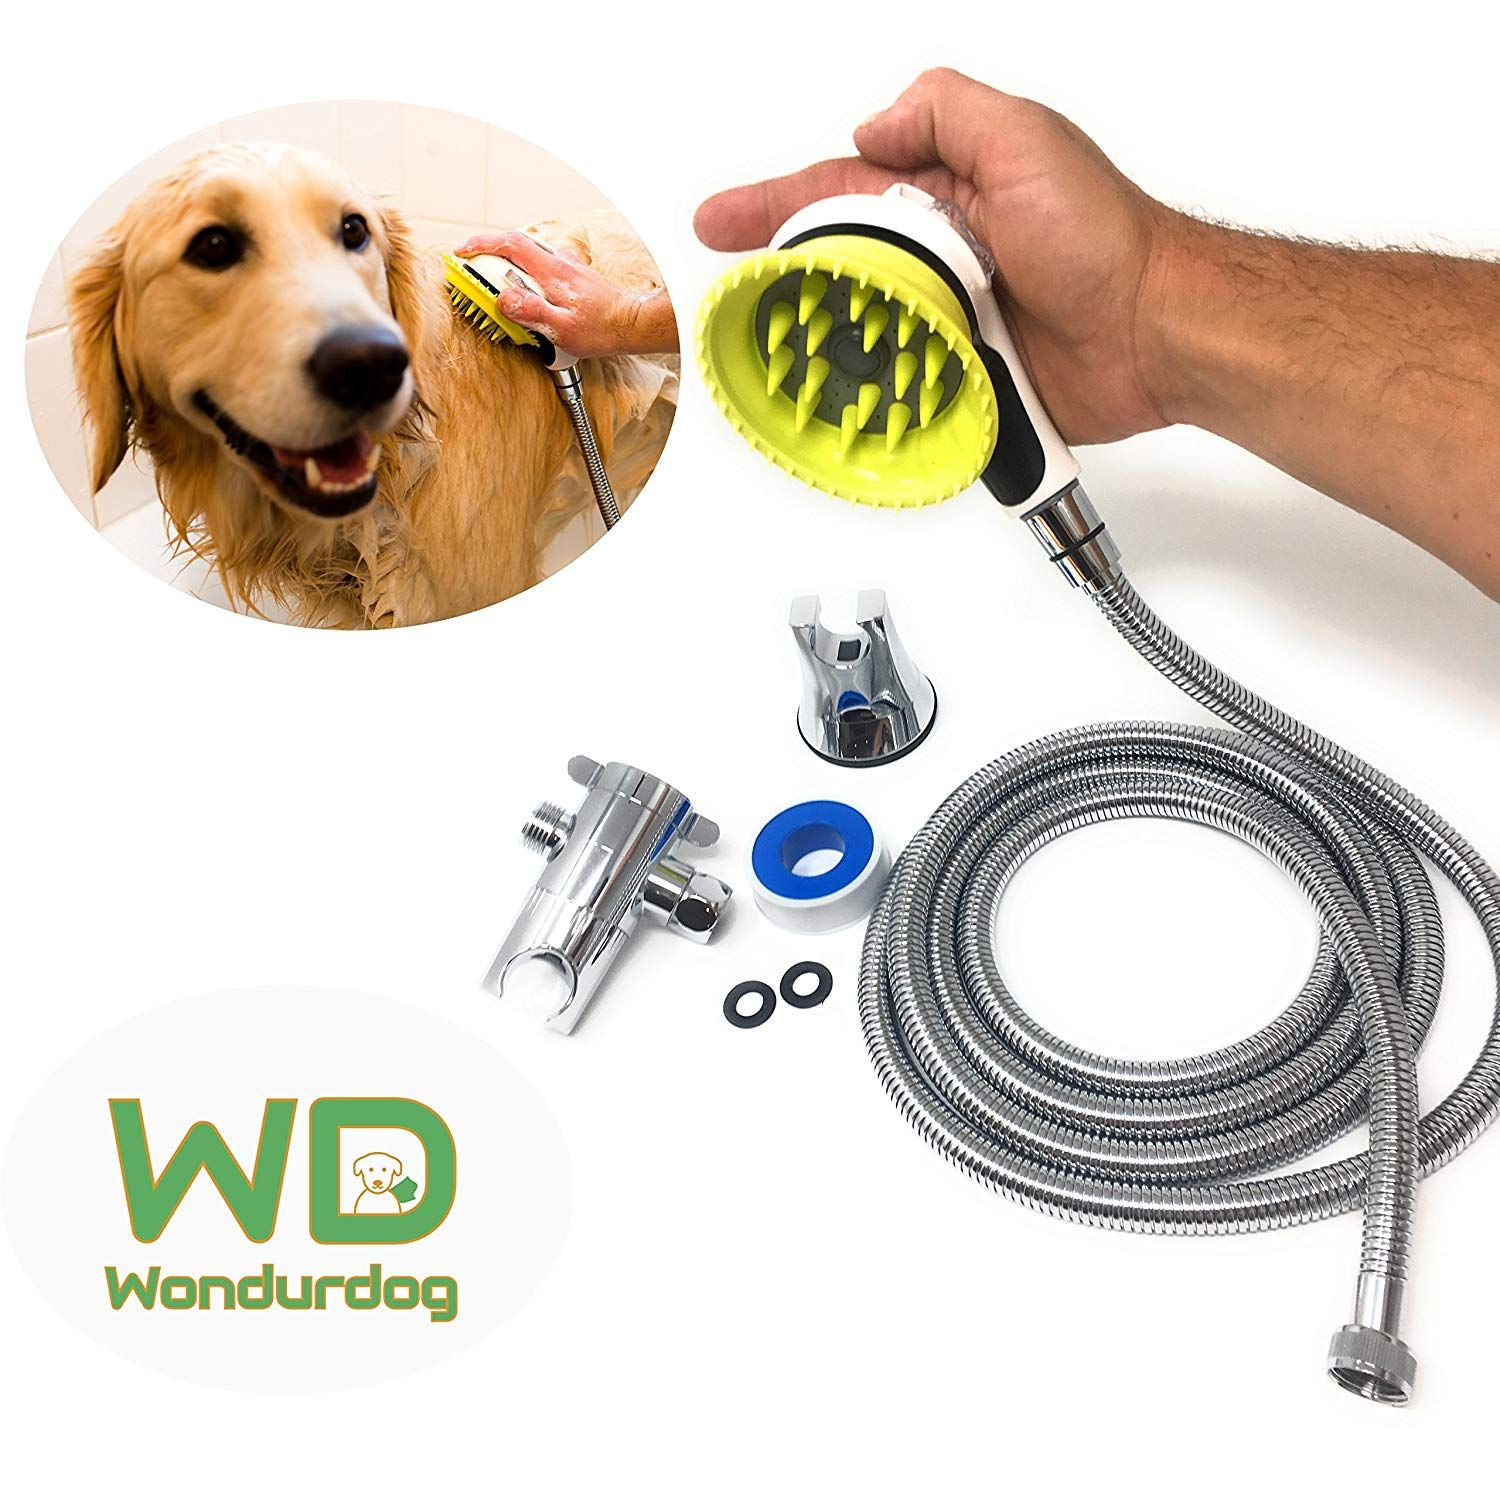 All In One Quality Dog Shower Kit Water Sprayer Brush Rubber